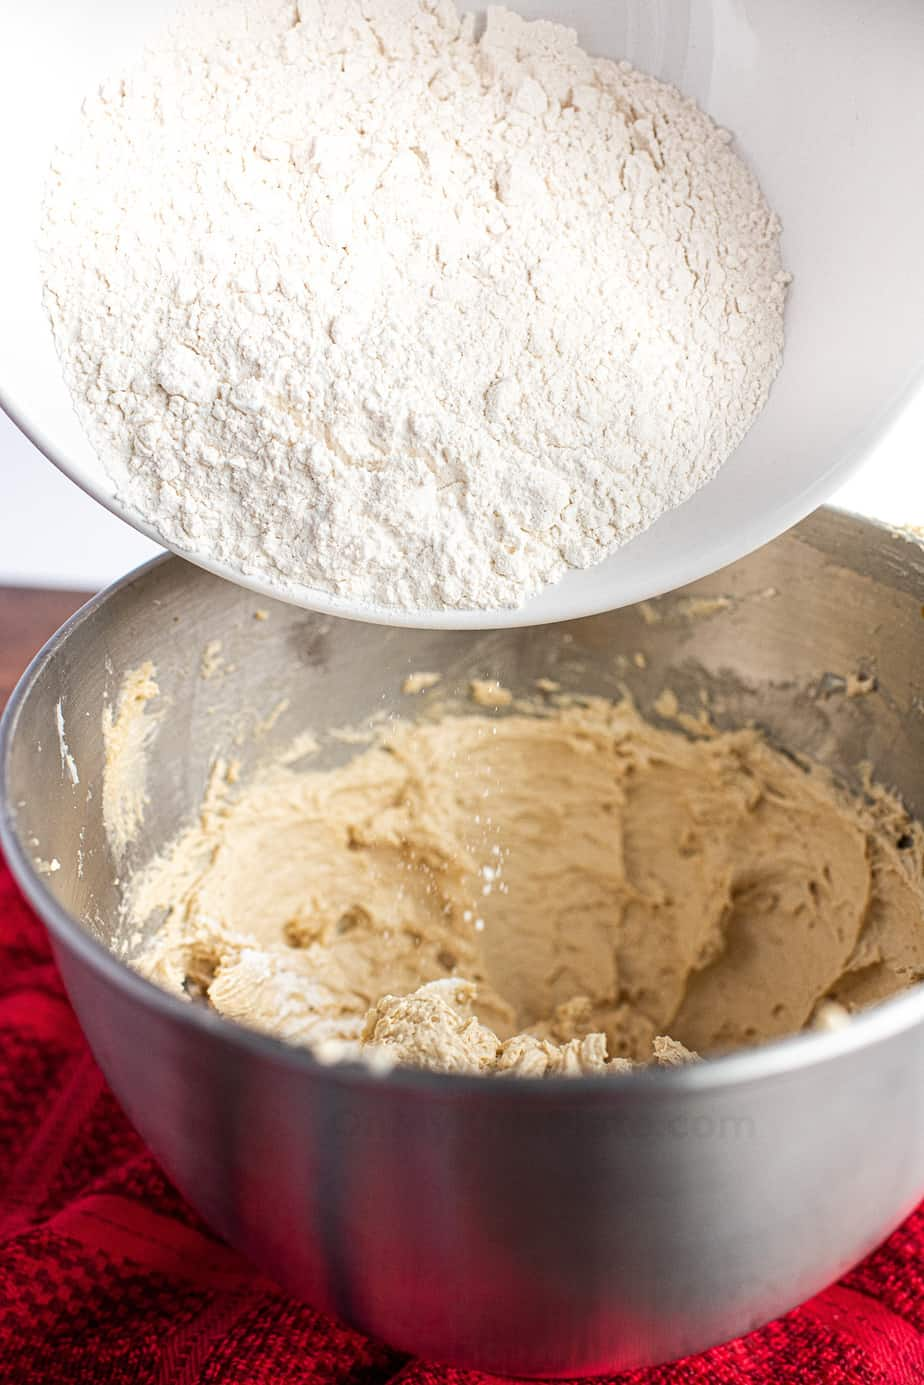 Pouring dry ingredients from a bowl to wet cookie ingredients below to mix into cookie dough.